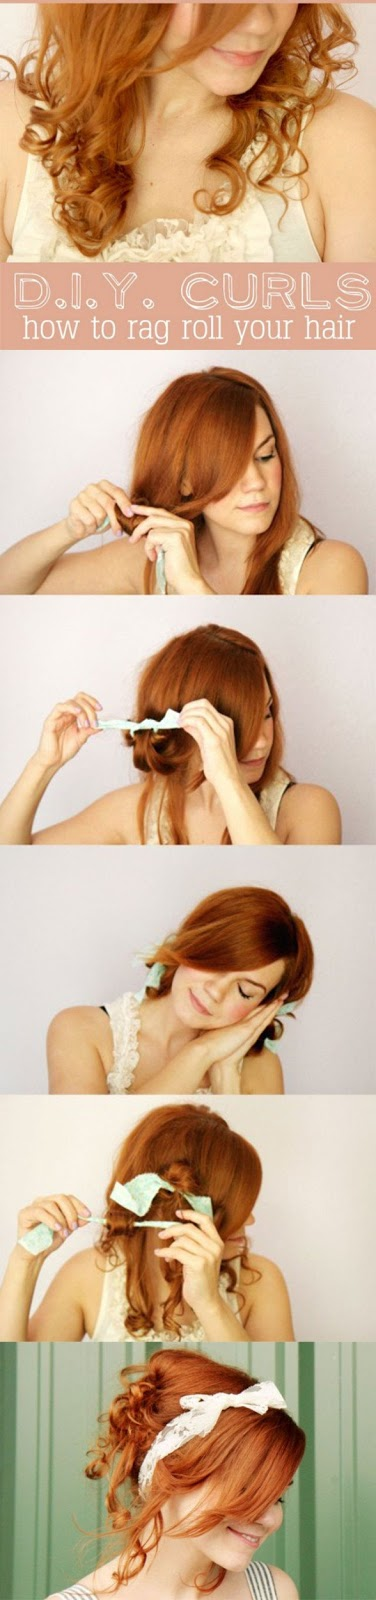 7.D.I.Y. CURLS HOW TO RAG ROLL YOUR HAIR